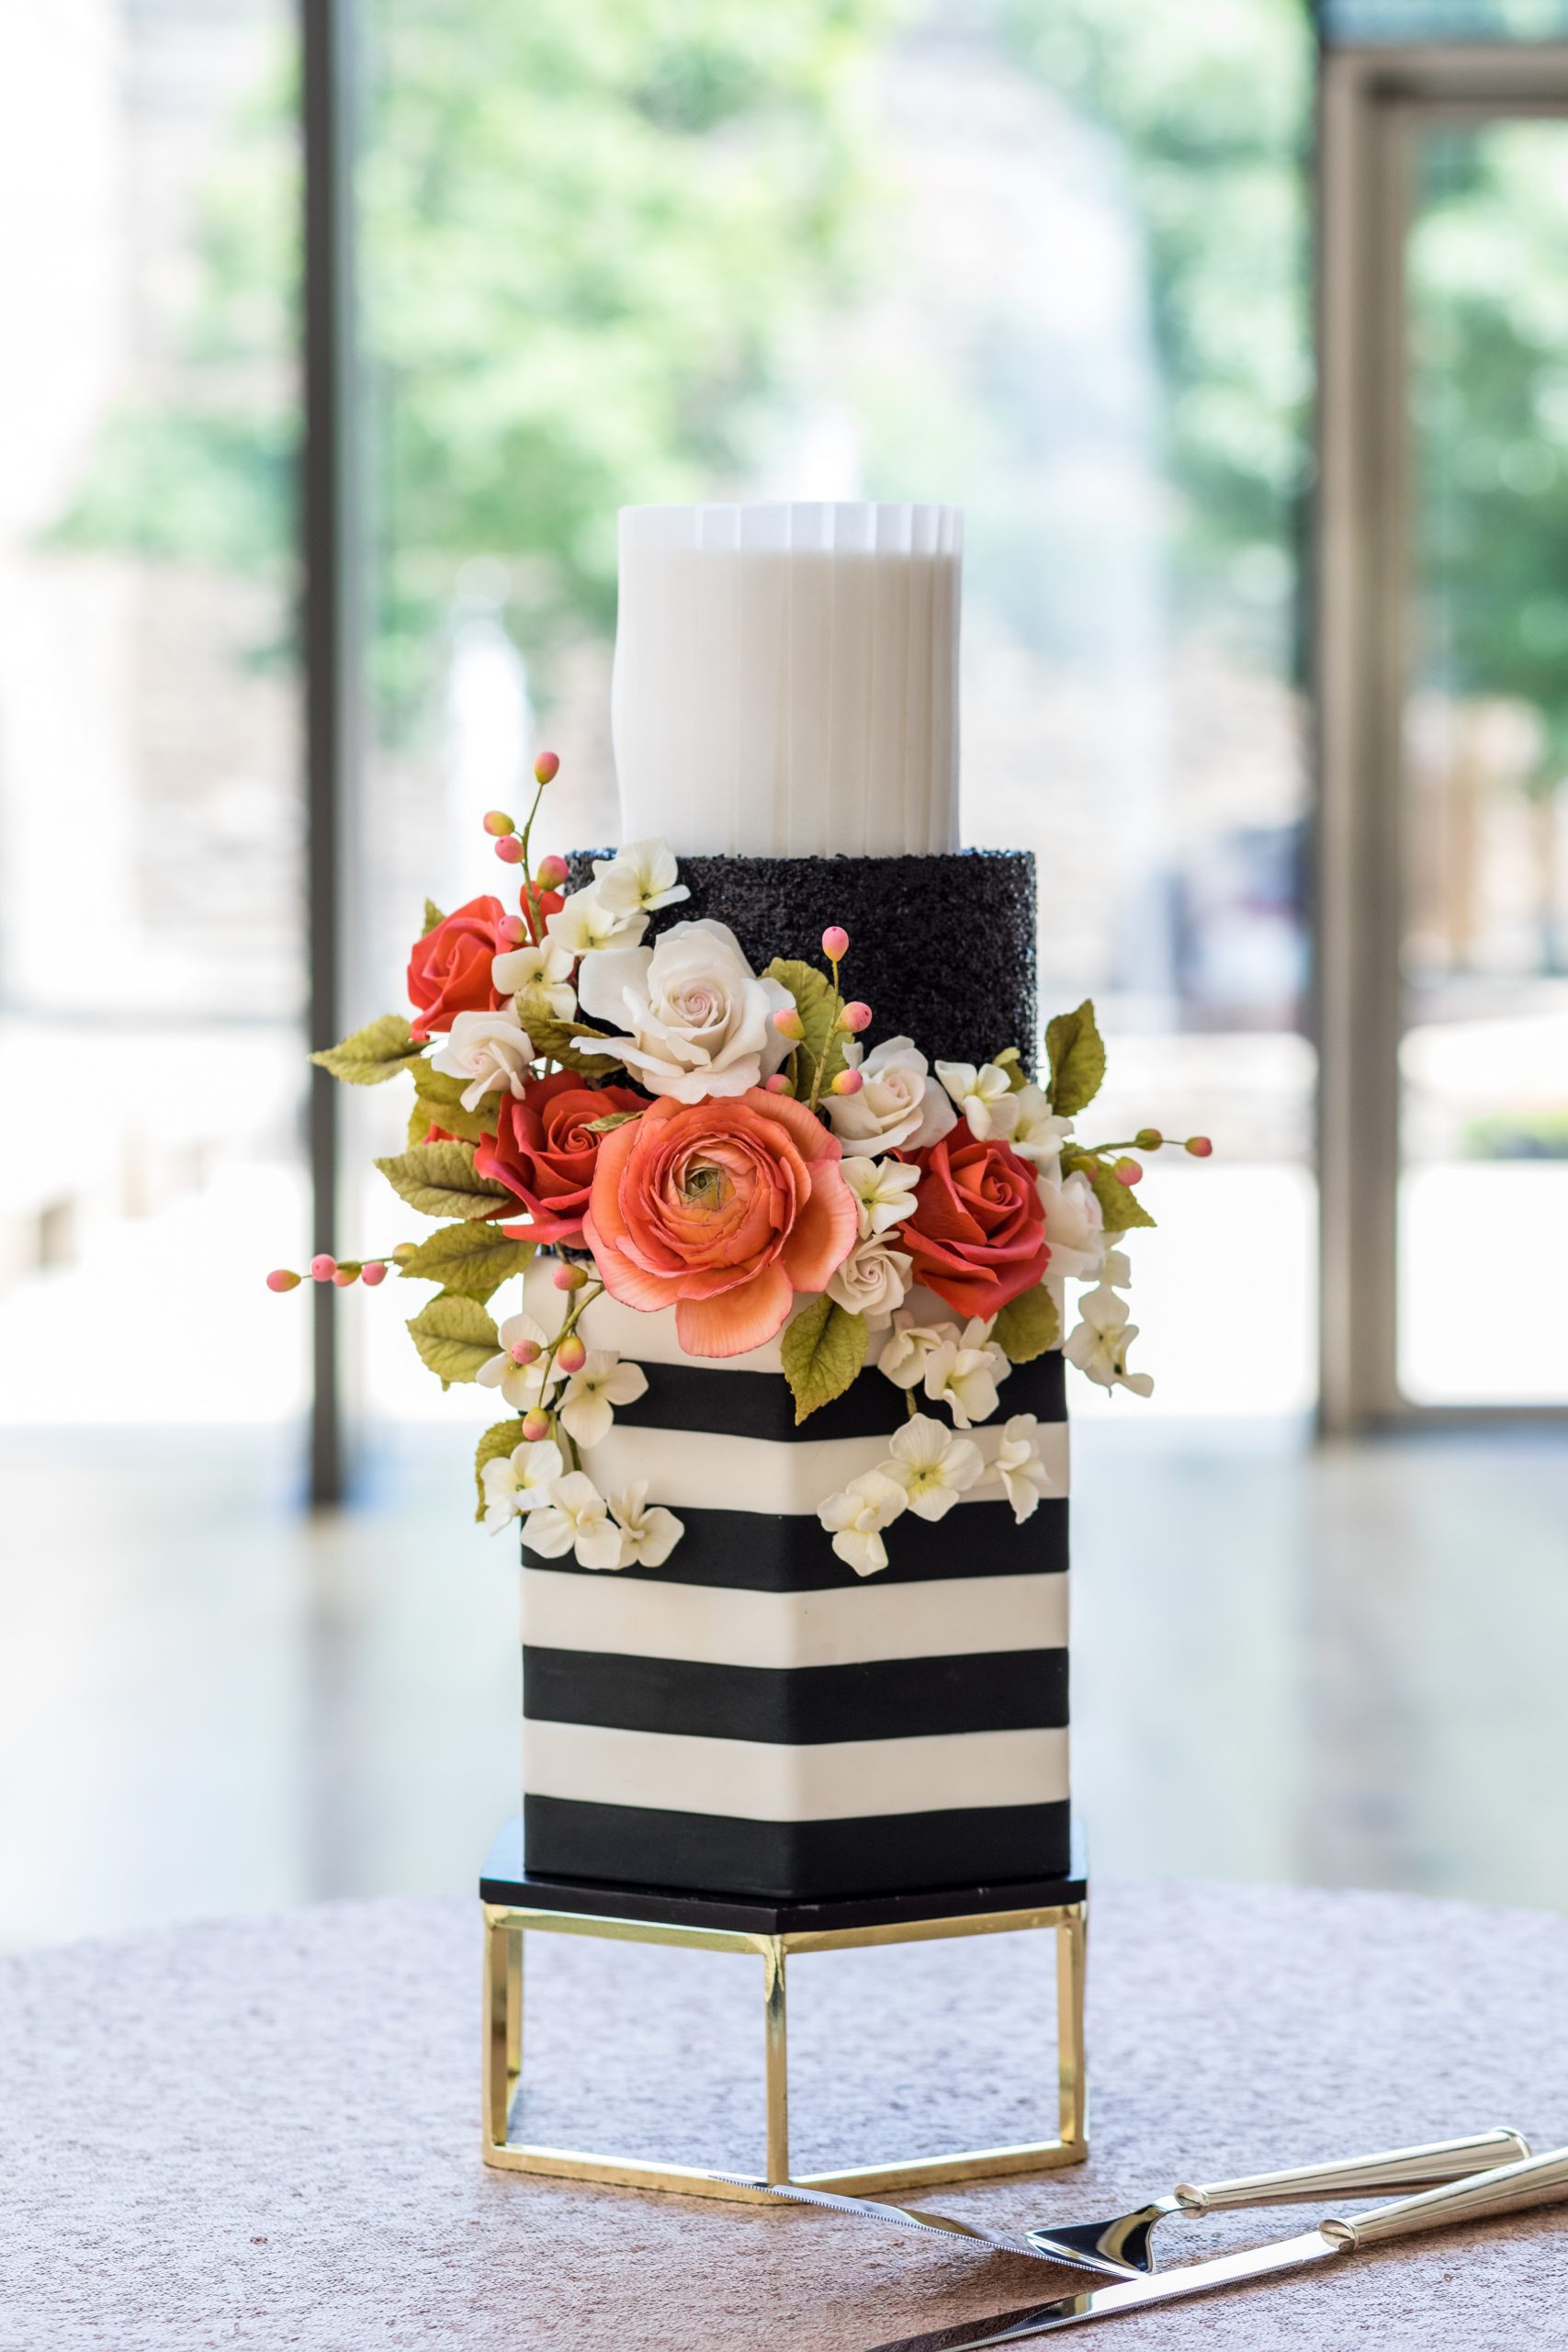 A decadent cake styled with lavish gold and real flowers at the Michener Museum styled urban contemporary shoot for Ashley Gerrity Photography this past Summer. Featured on Dream Weddings.